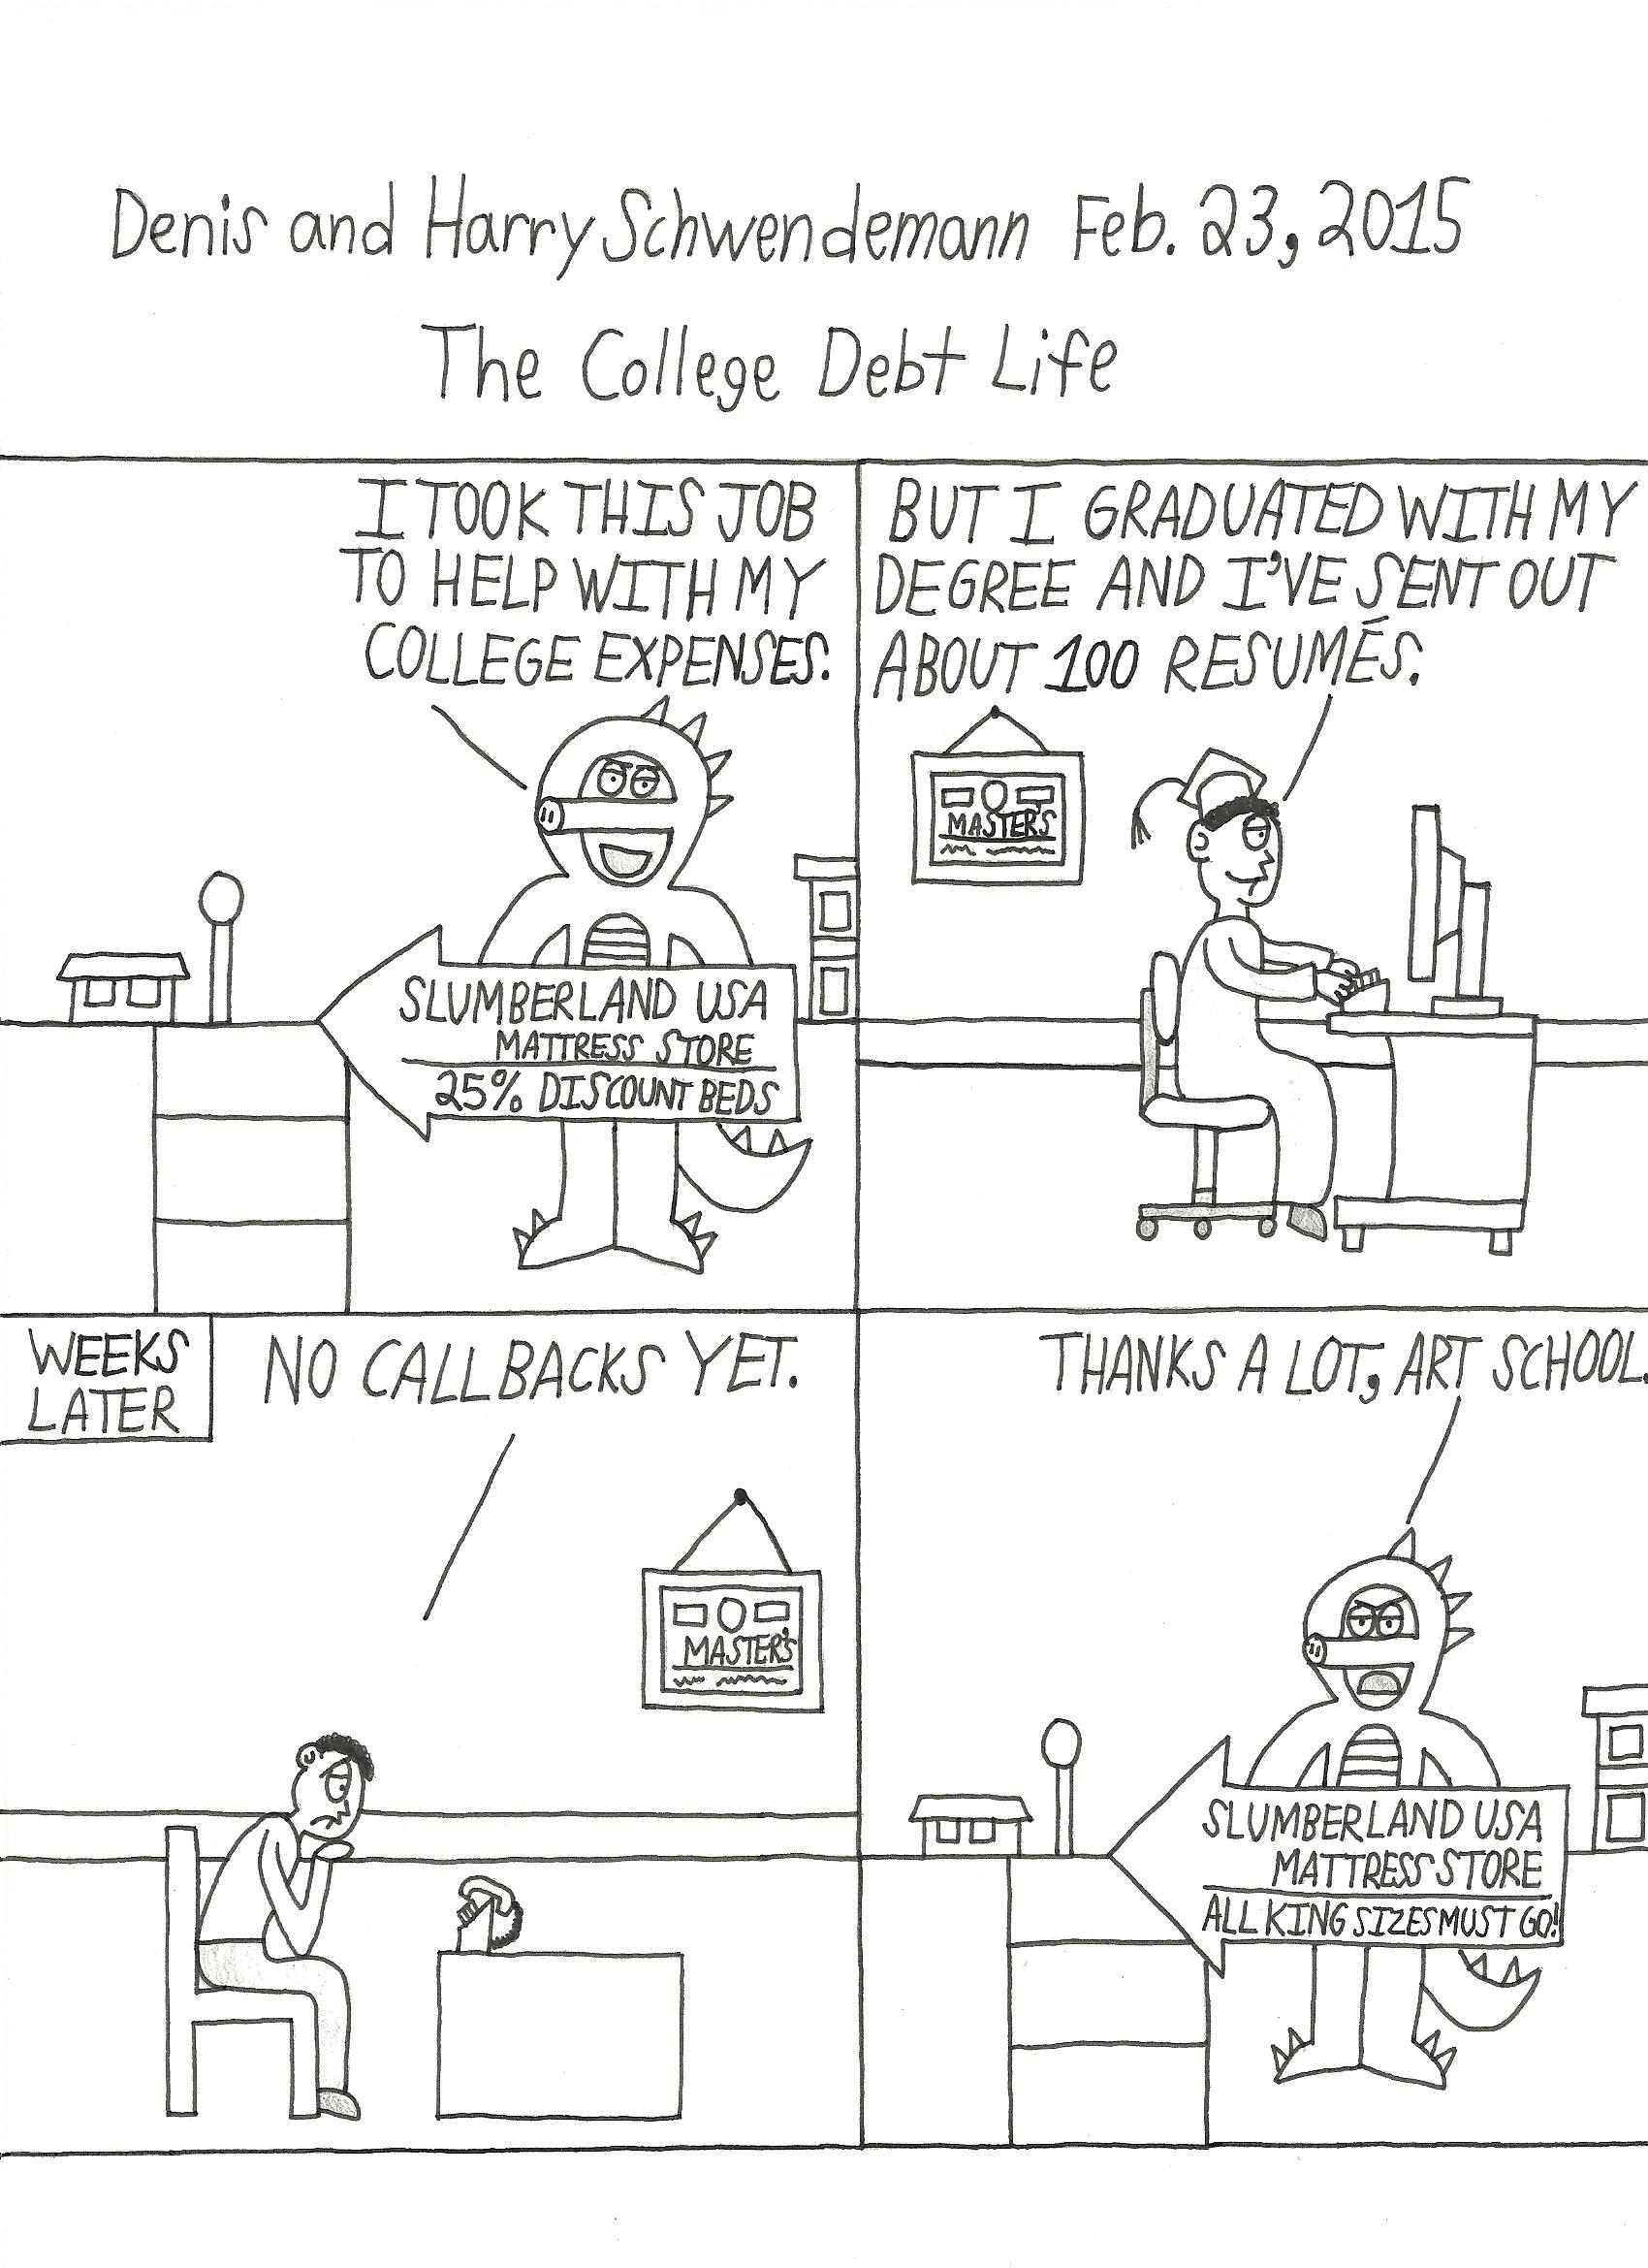 The College Debt Life